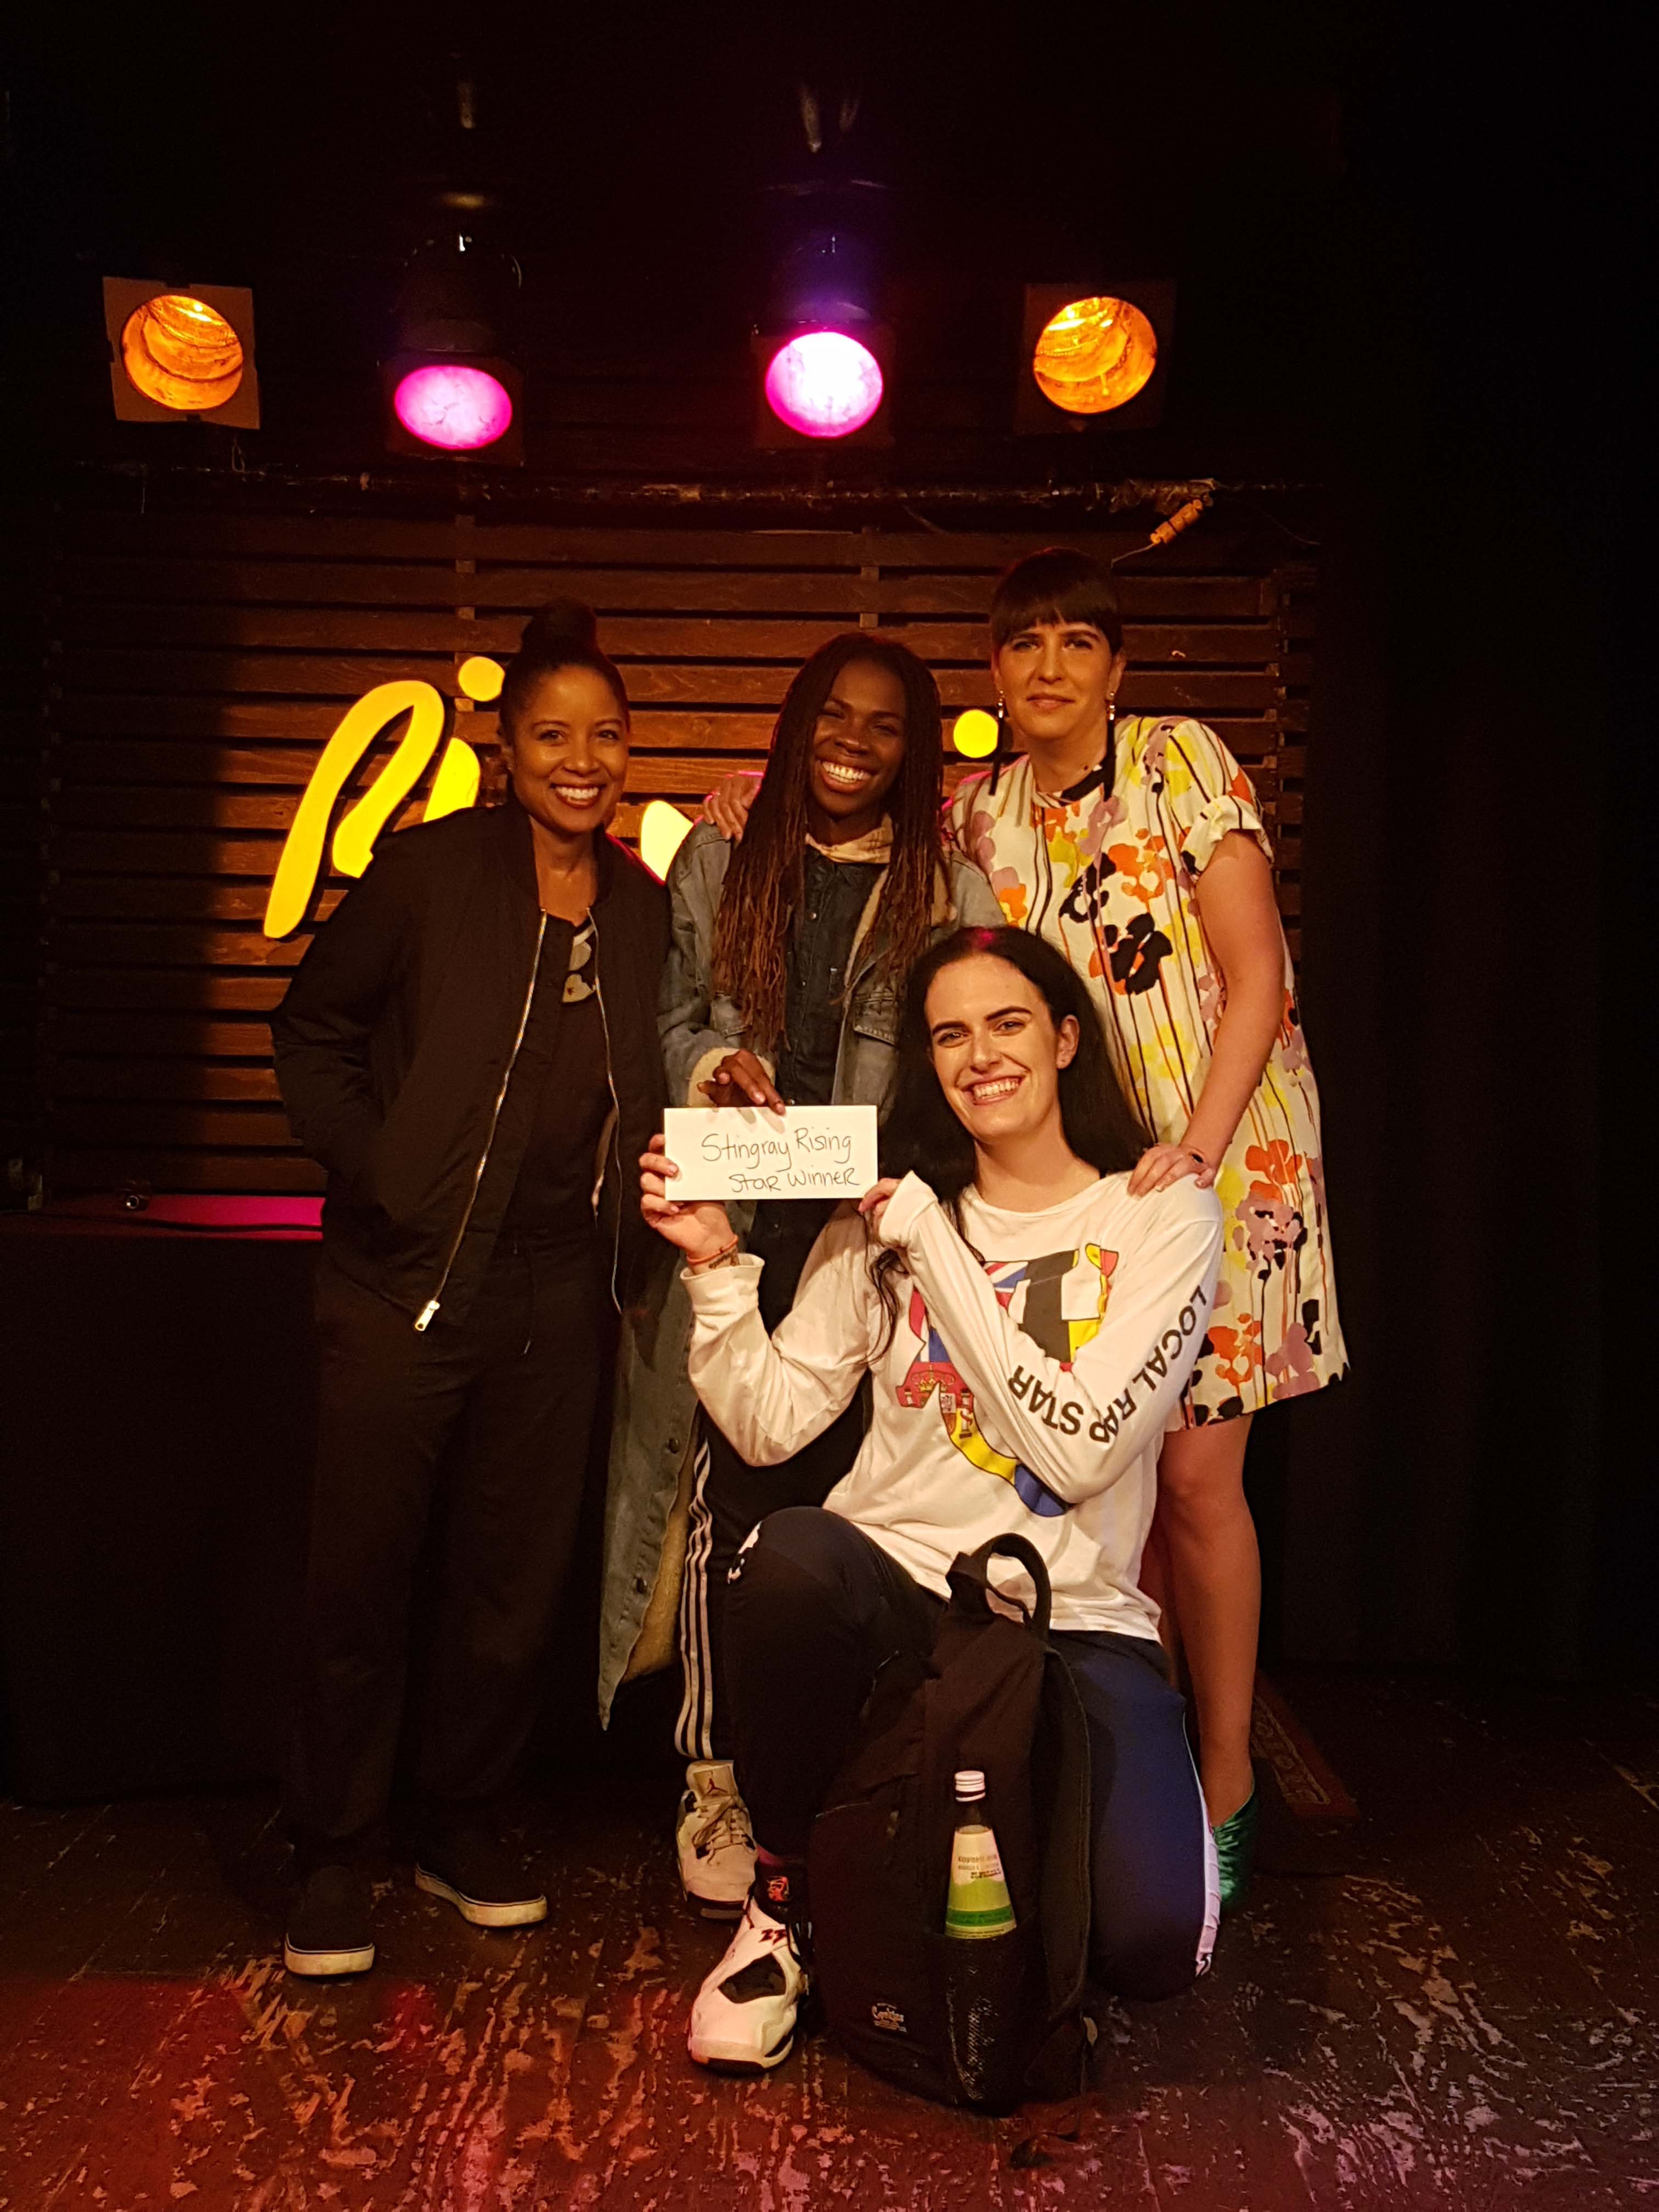 Bev Moore (Music Ontario), haviah mighty (The Sorority), Ariane Charbonneau (Stingray Music) and lex leosis (The Sorority).